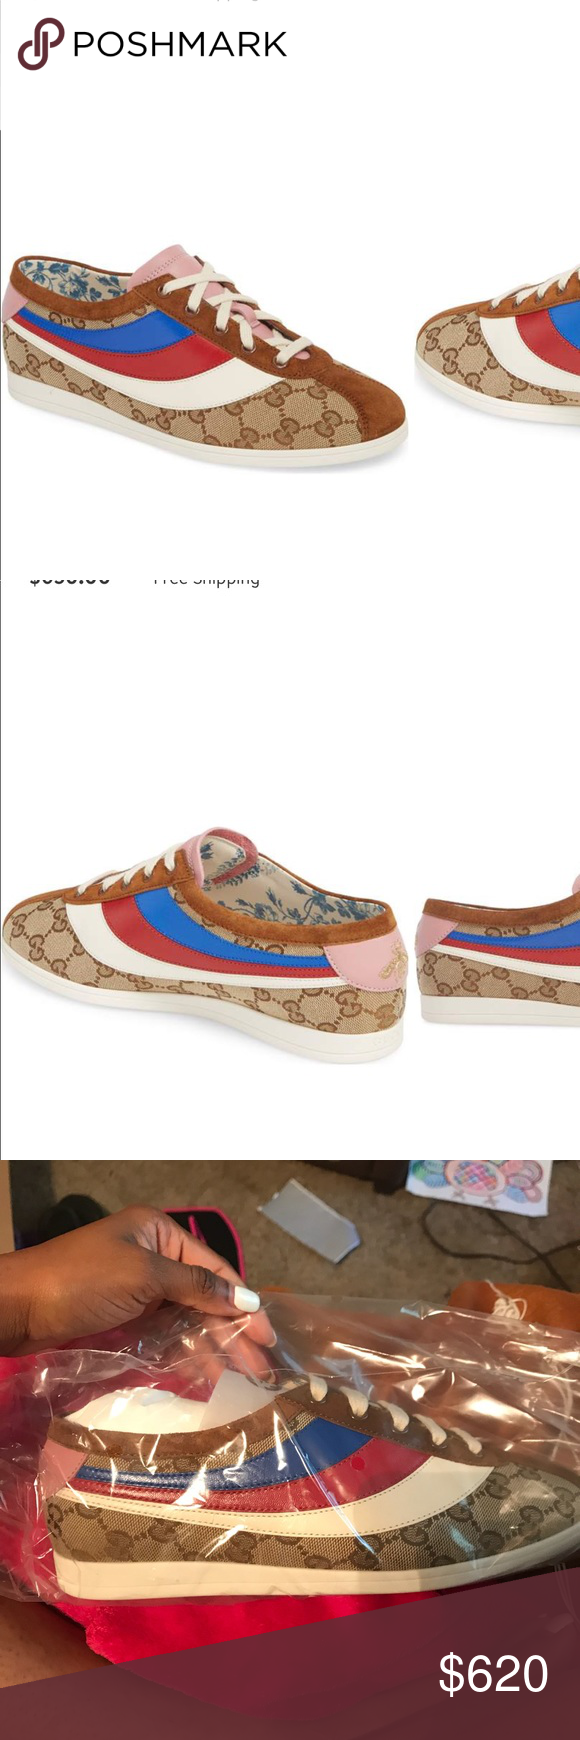 03589f093 GUCCI Falacer Lace-Up Sneaker Original GG canvas gleams on sneakers  featuring a tricolor leather